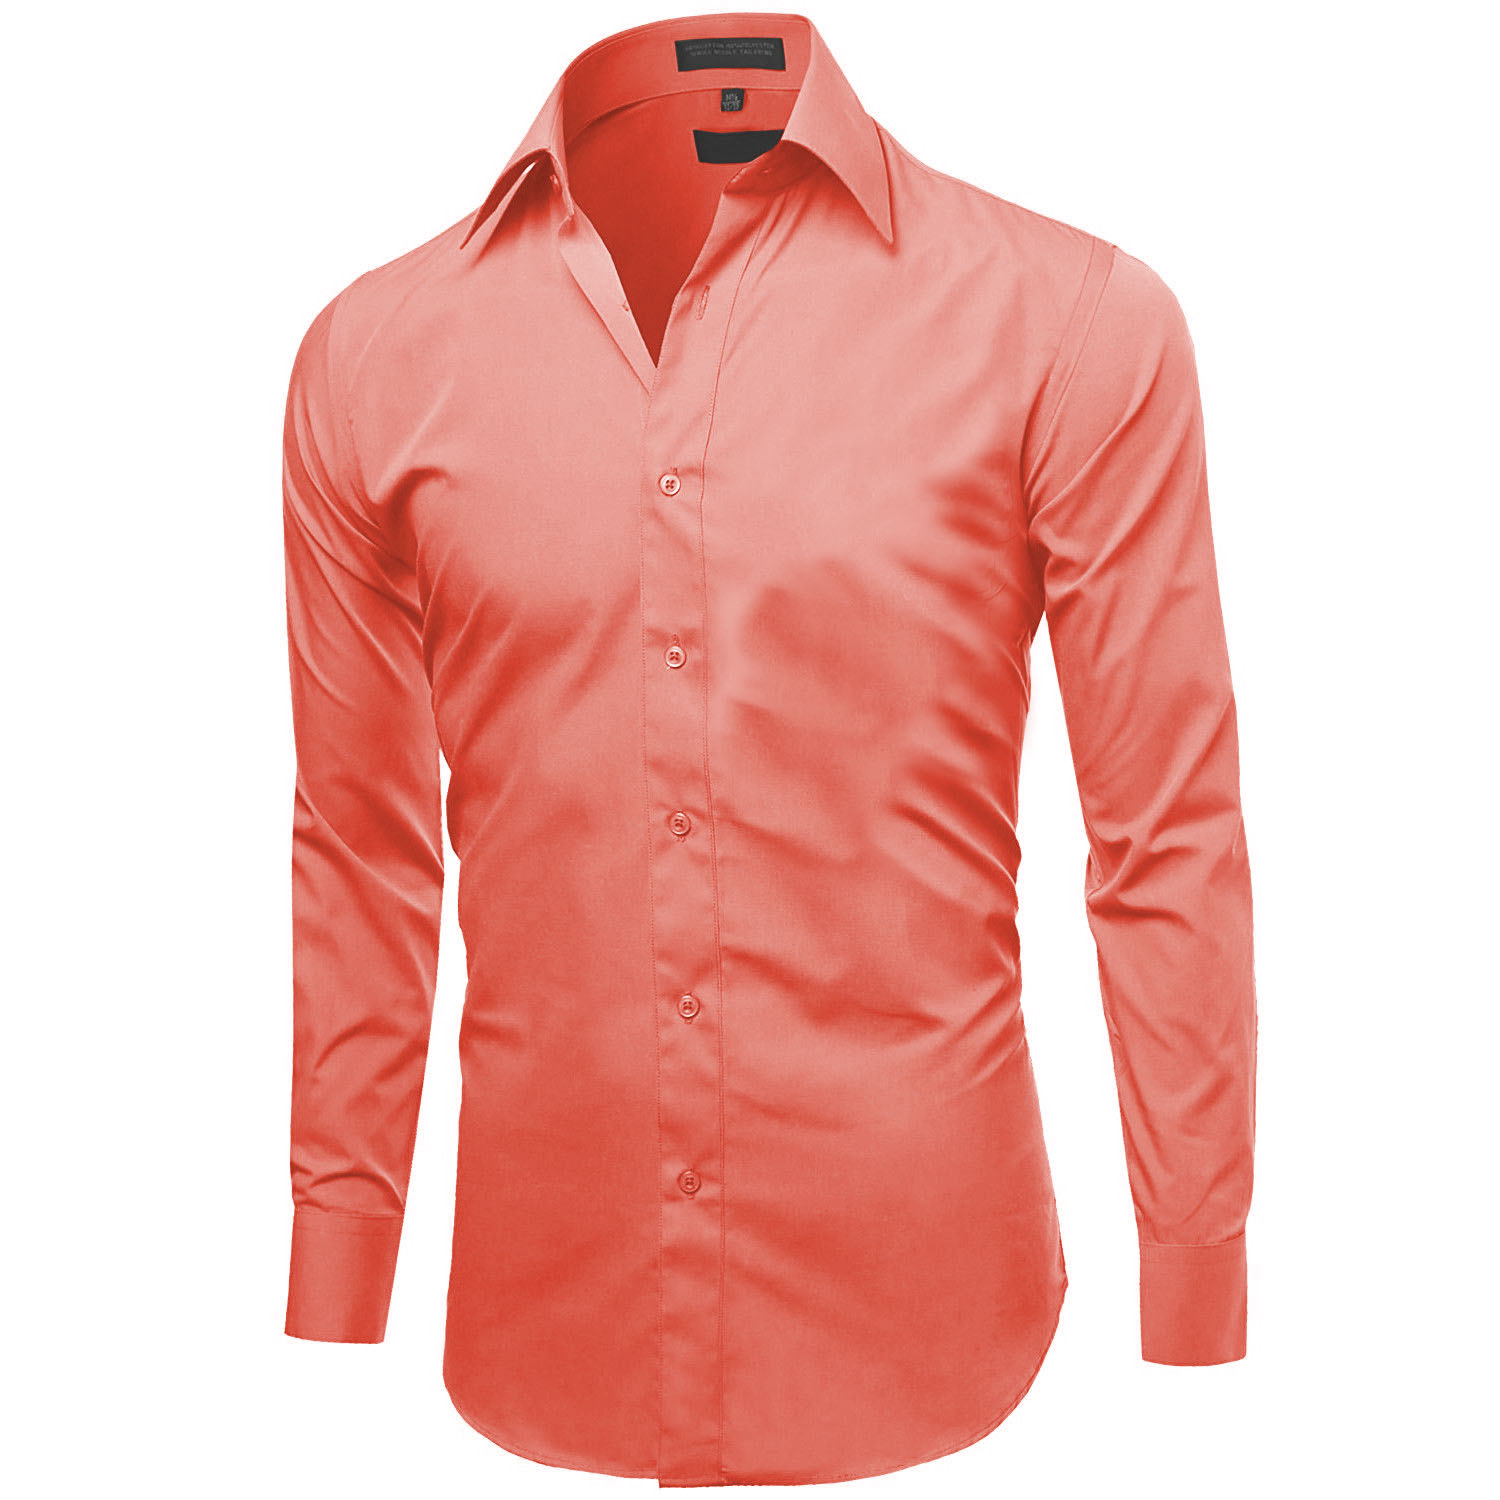 Omega-Italy-Men-039-s-Premium-Slim-Fit-Button-Up-Long-Sleeve-Solid-Color-Dress-Shirt thumbnail 23